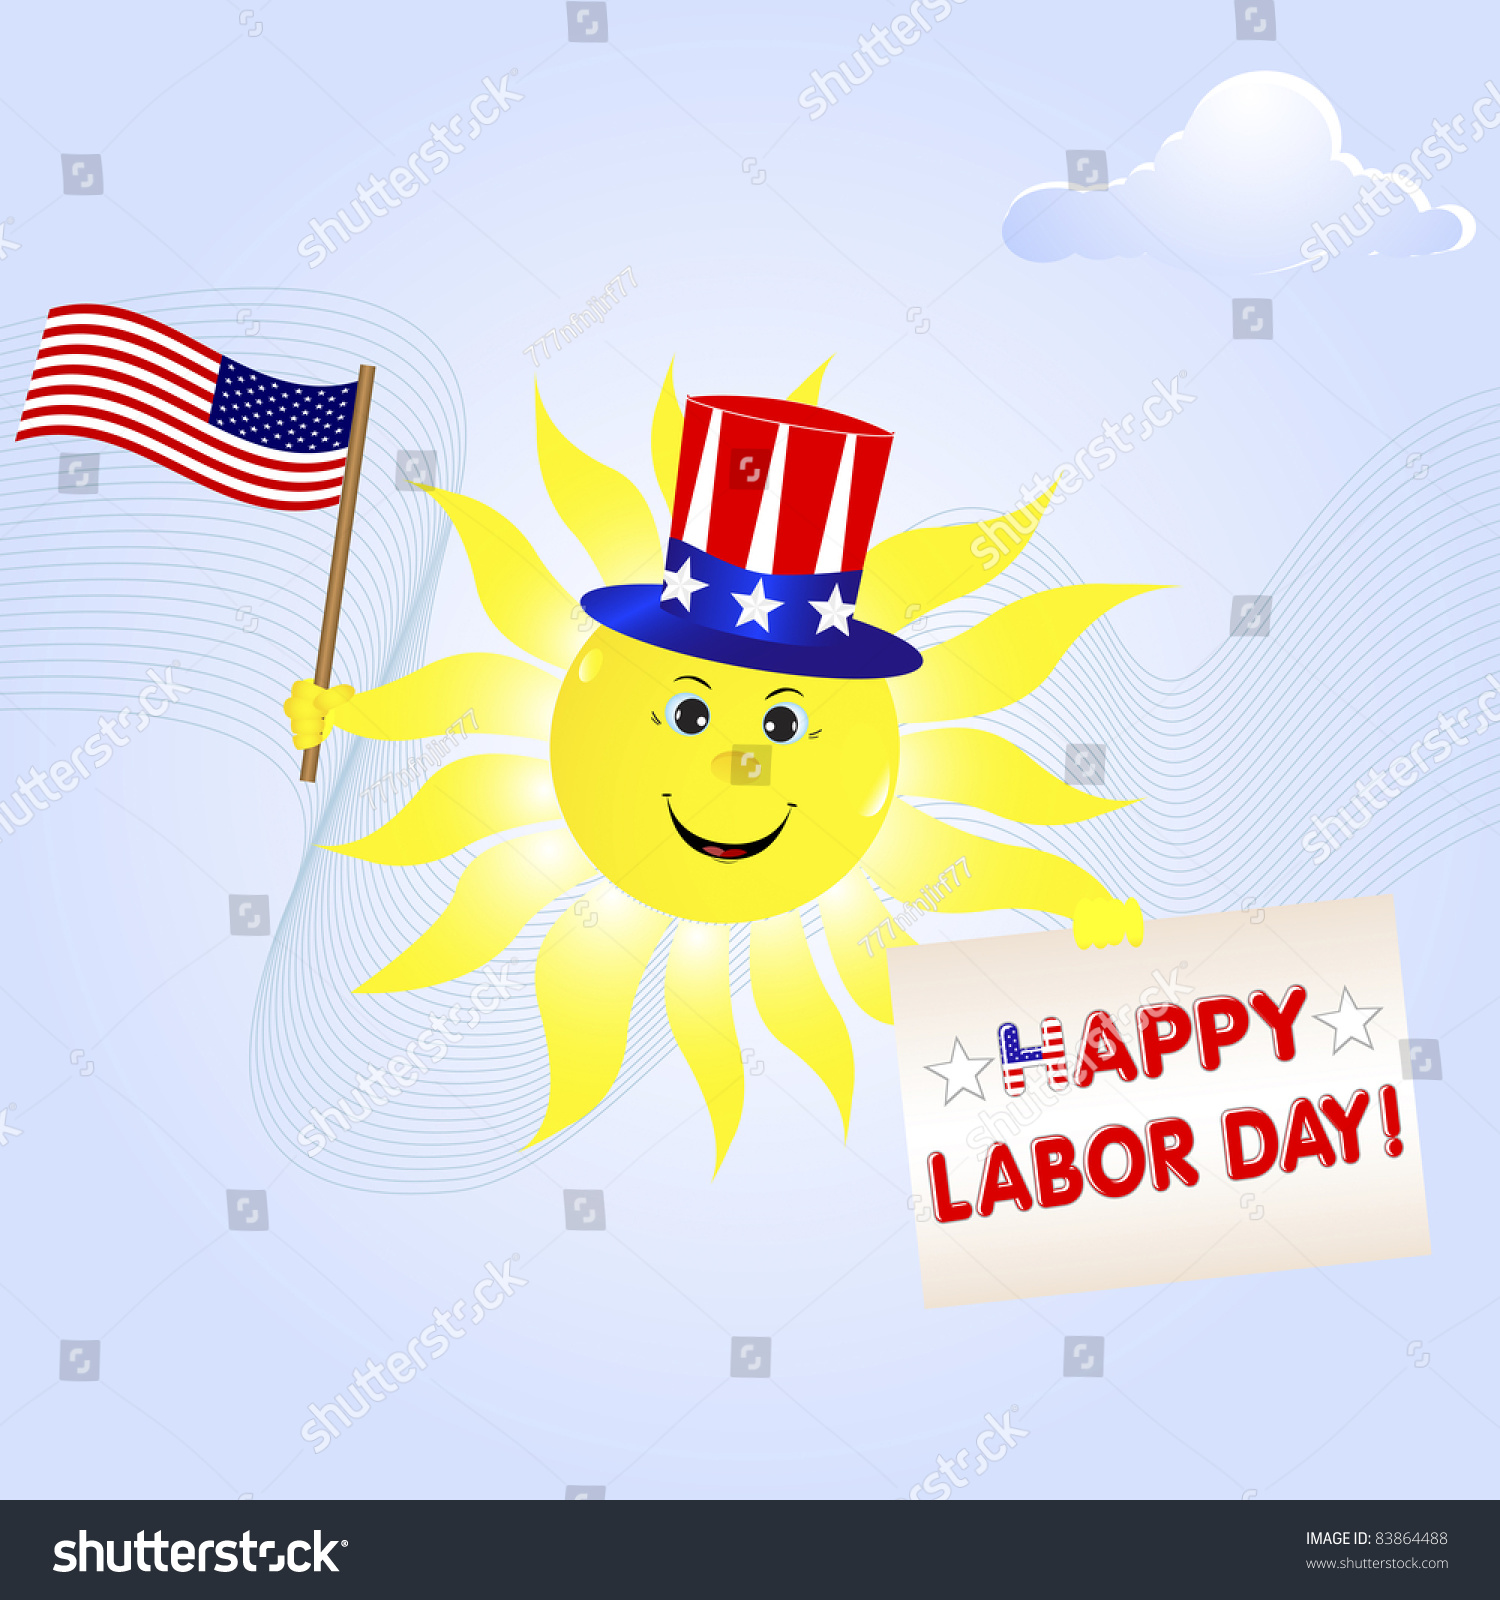 Labor Day The Smiling Sun With The American Flag And A Greeting